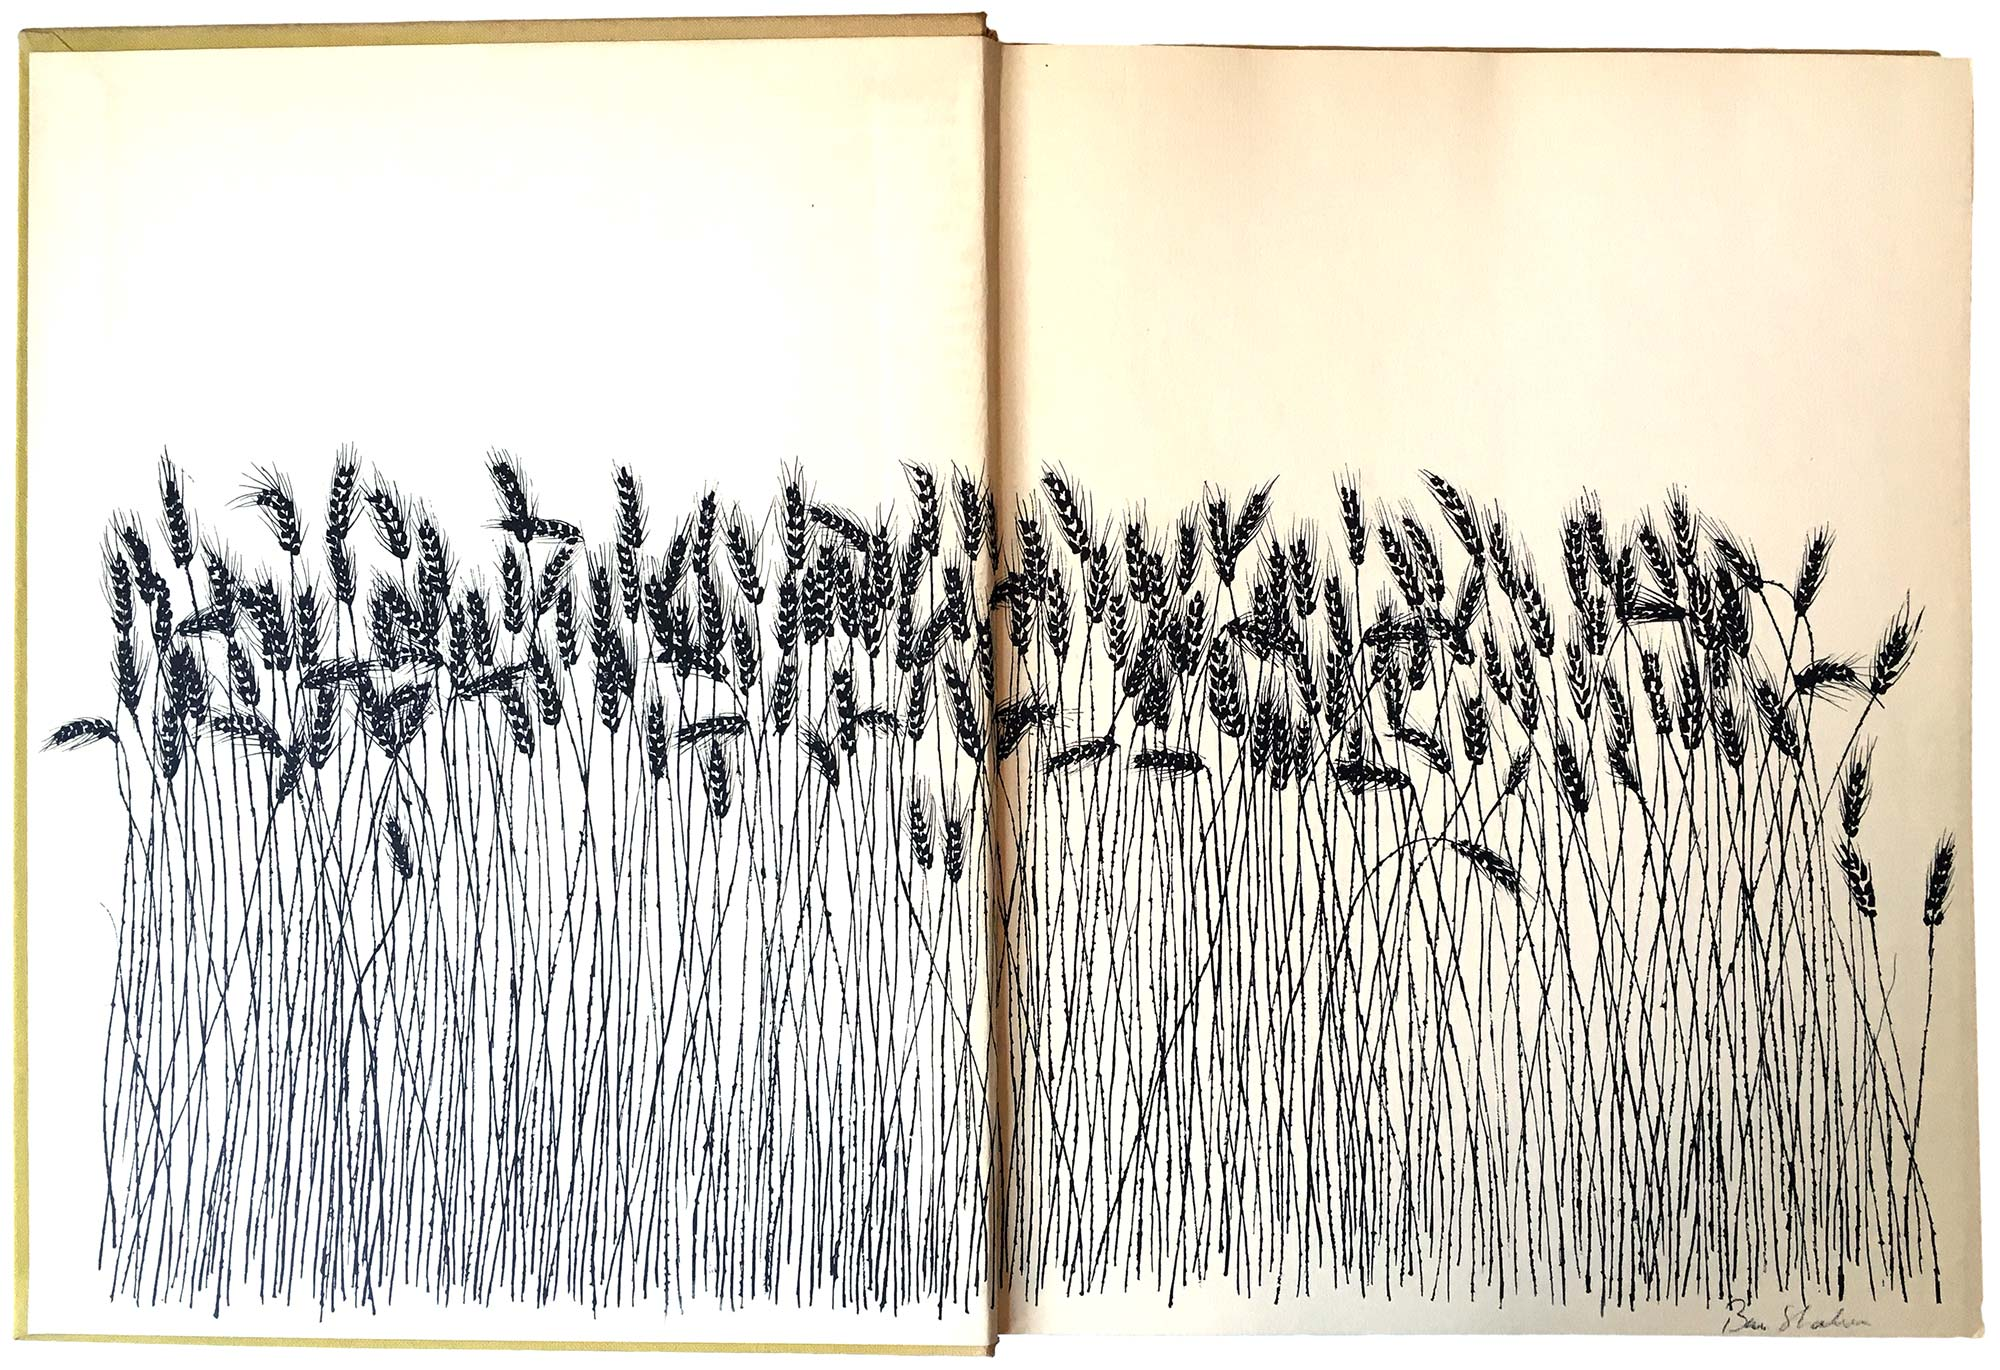 Soby_ShahnGraphic_endpapers